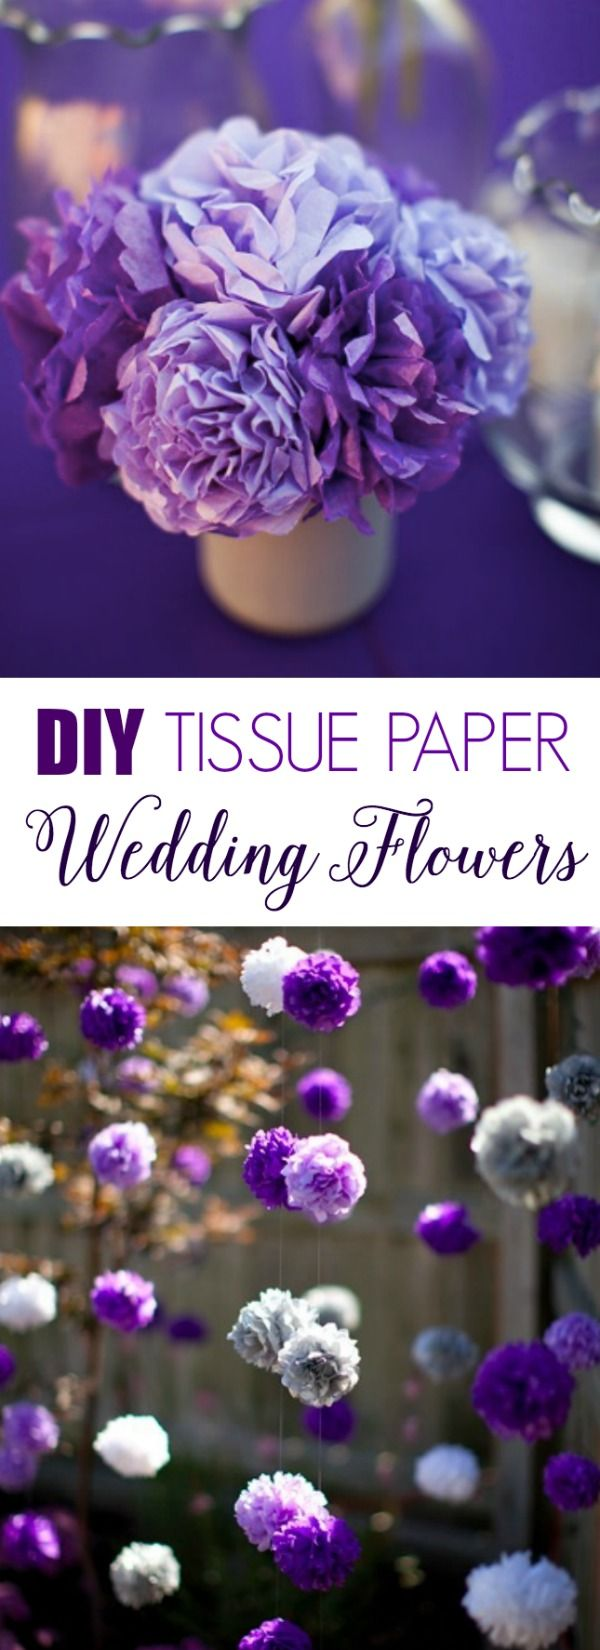 Diy Tissue Paper Wedding Flowers Instructions And Supplies